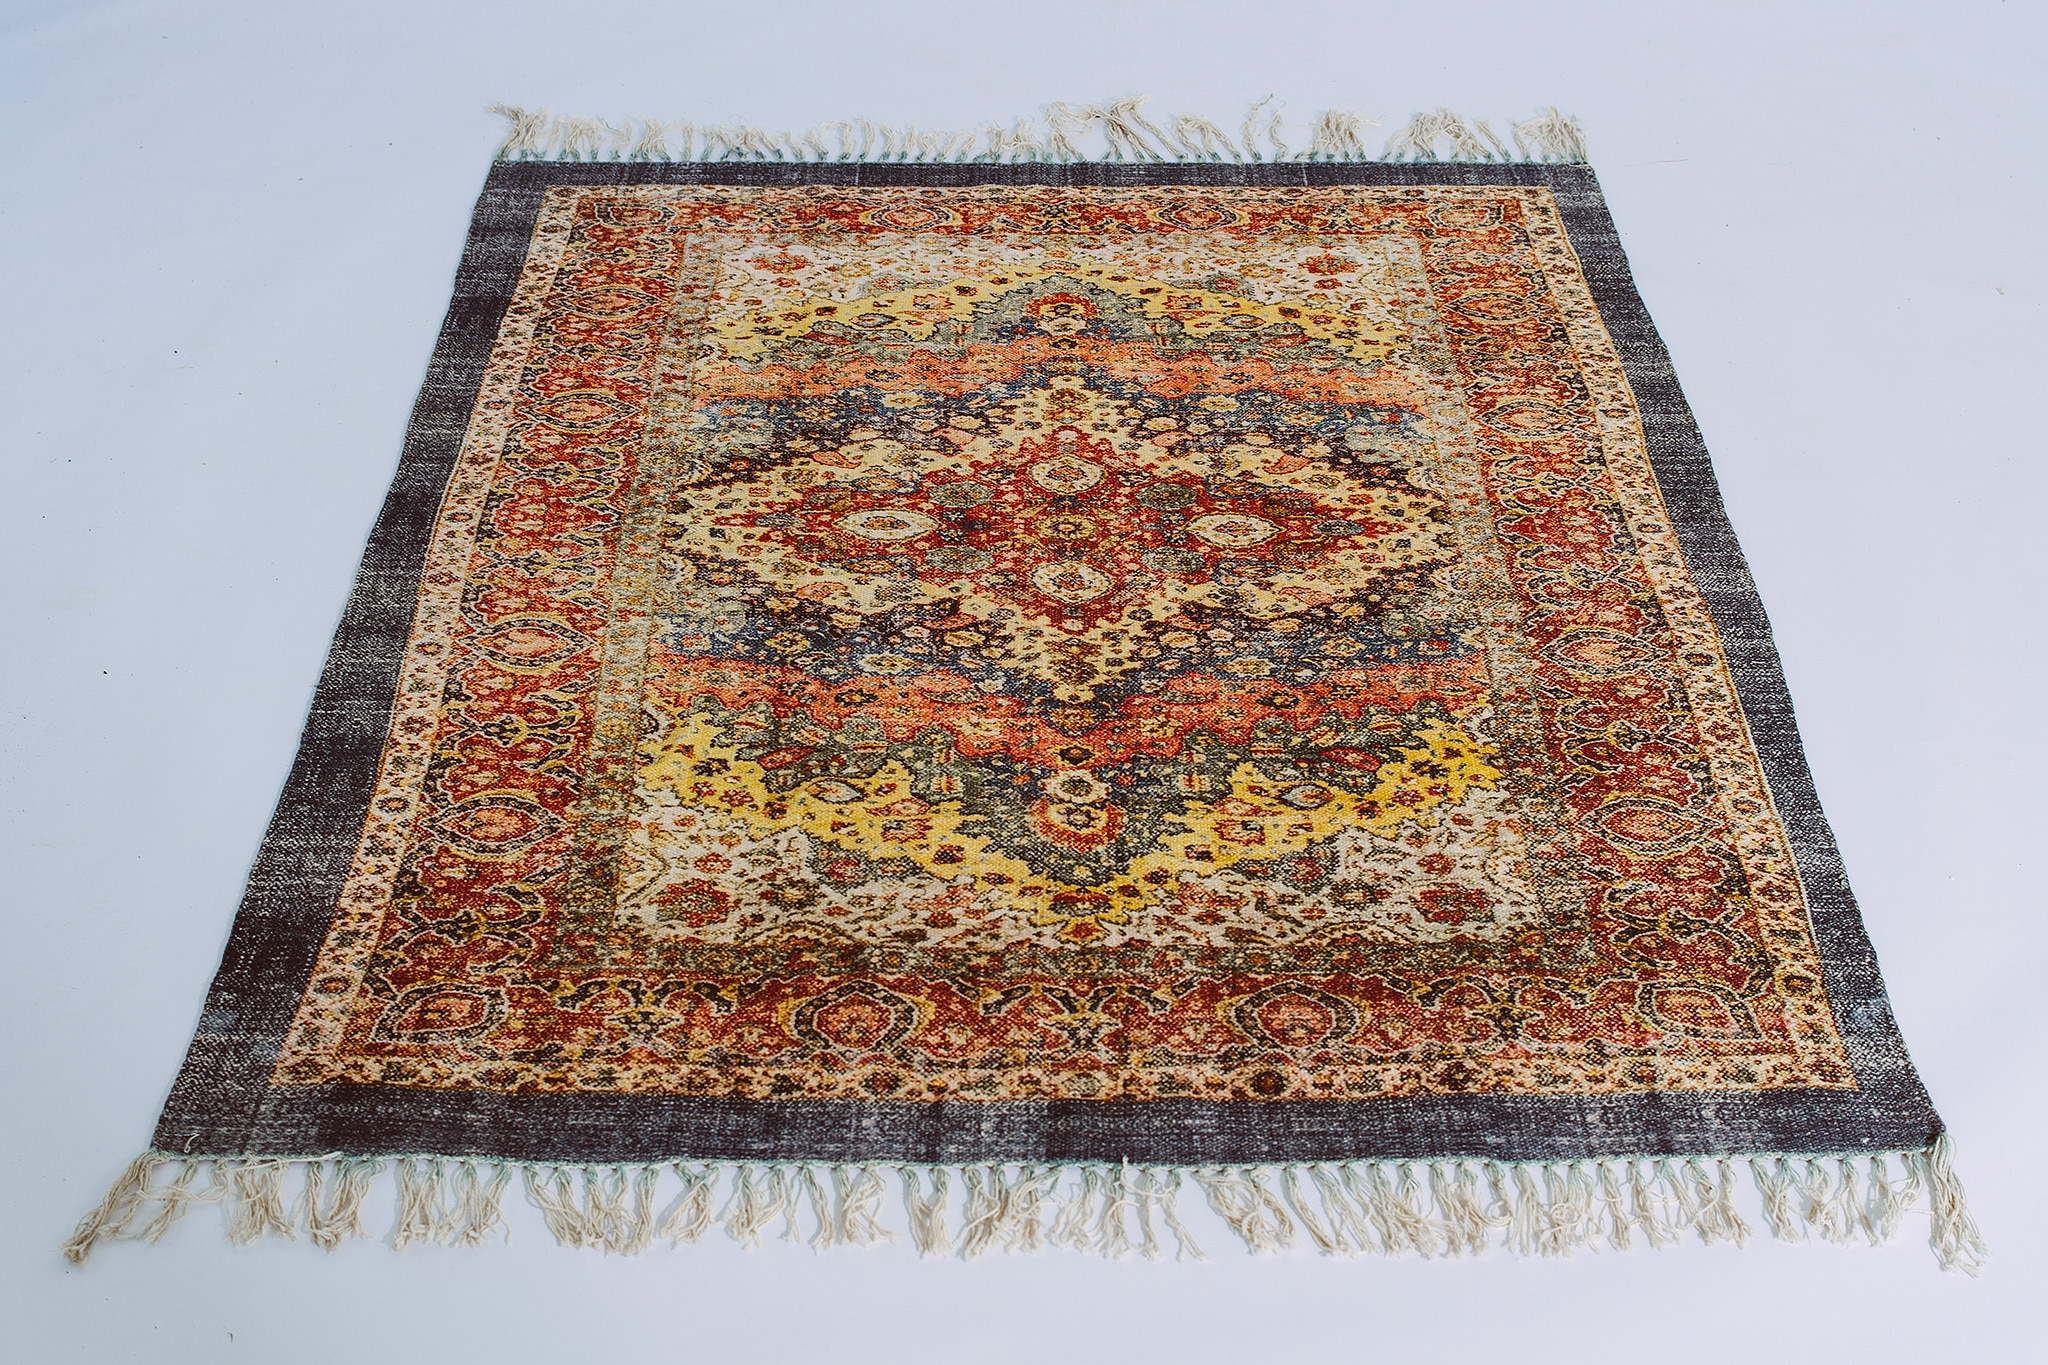 IMAGE OF EARTH COVER RUG (GYPSY)